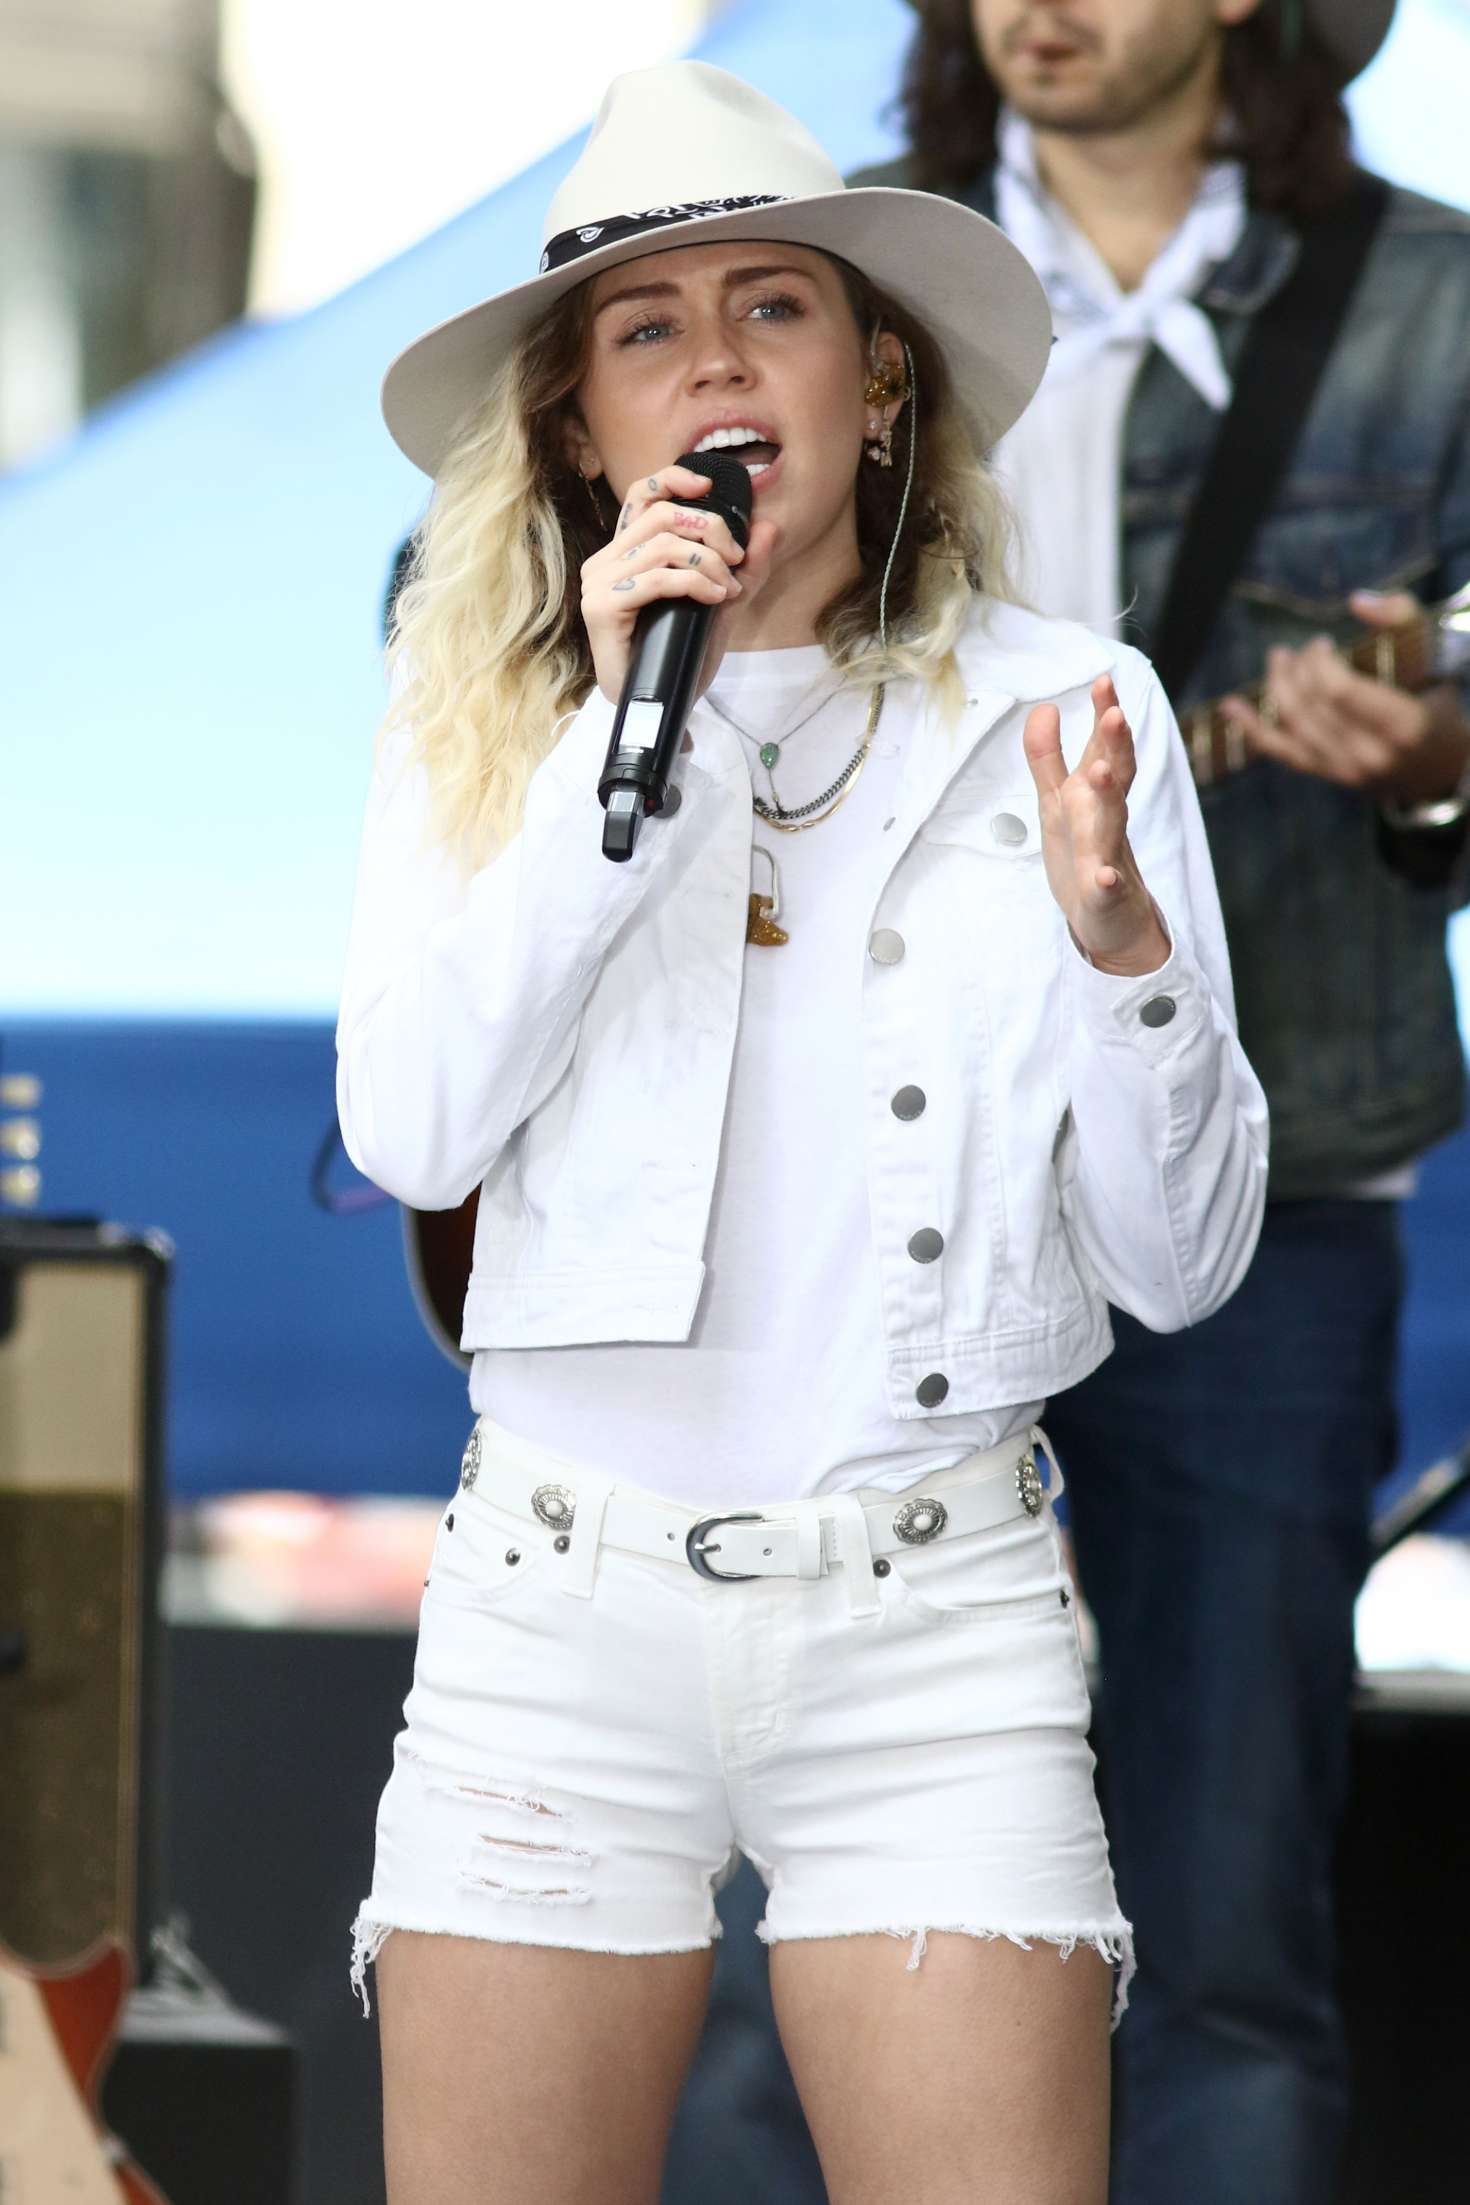 Miley Cyrus Performs Live At The NBC 'Today' Show In New York